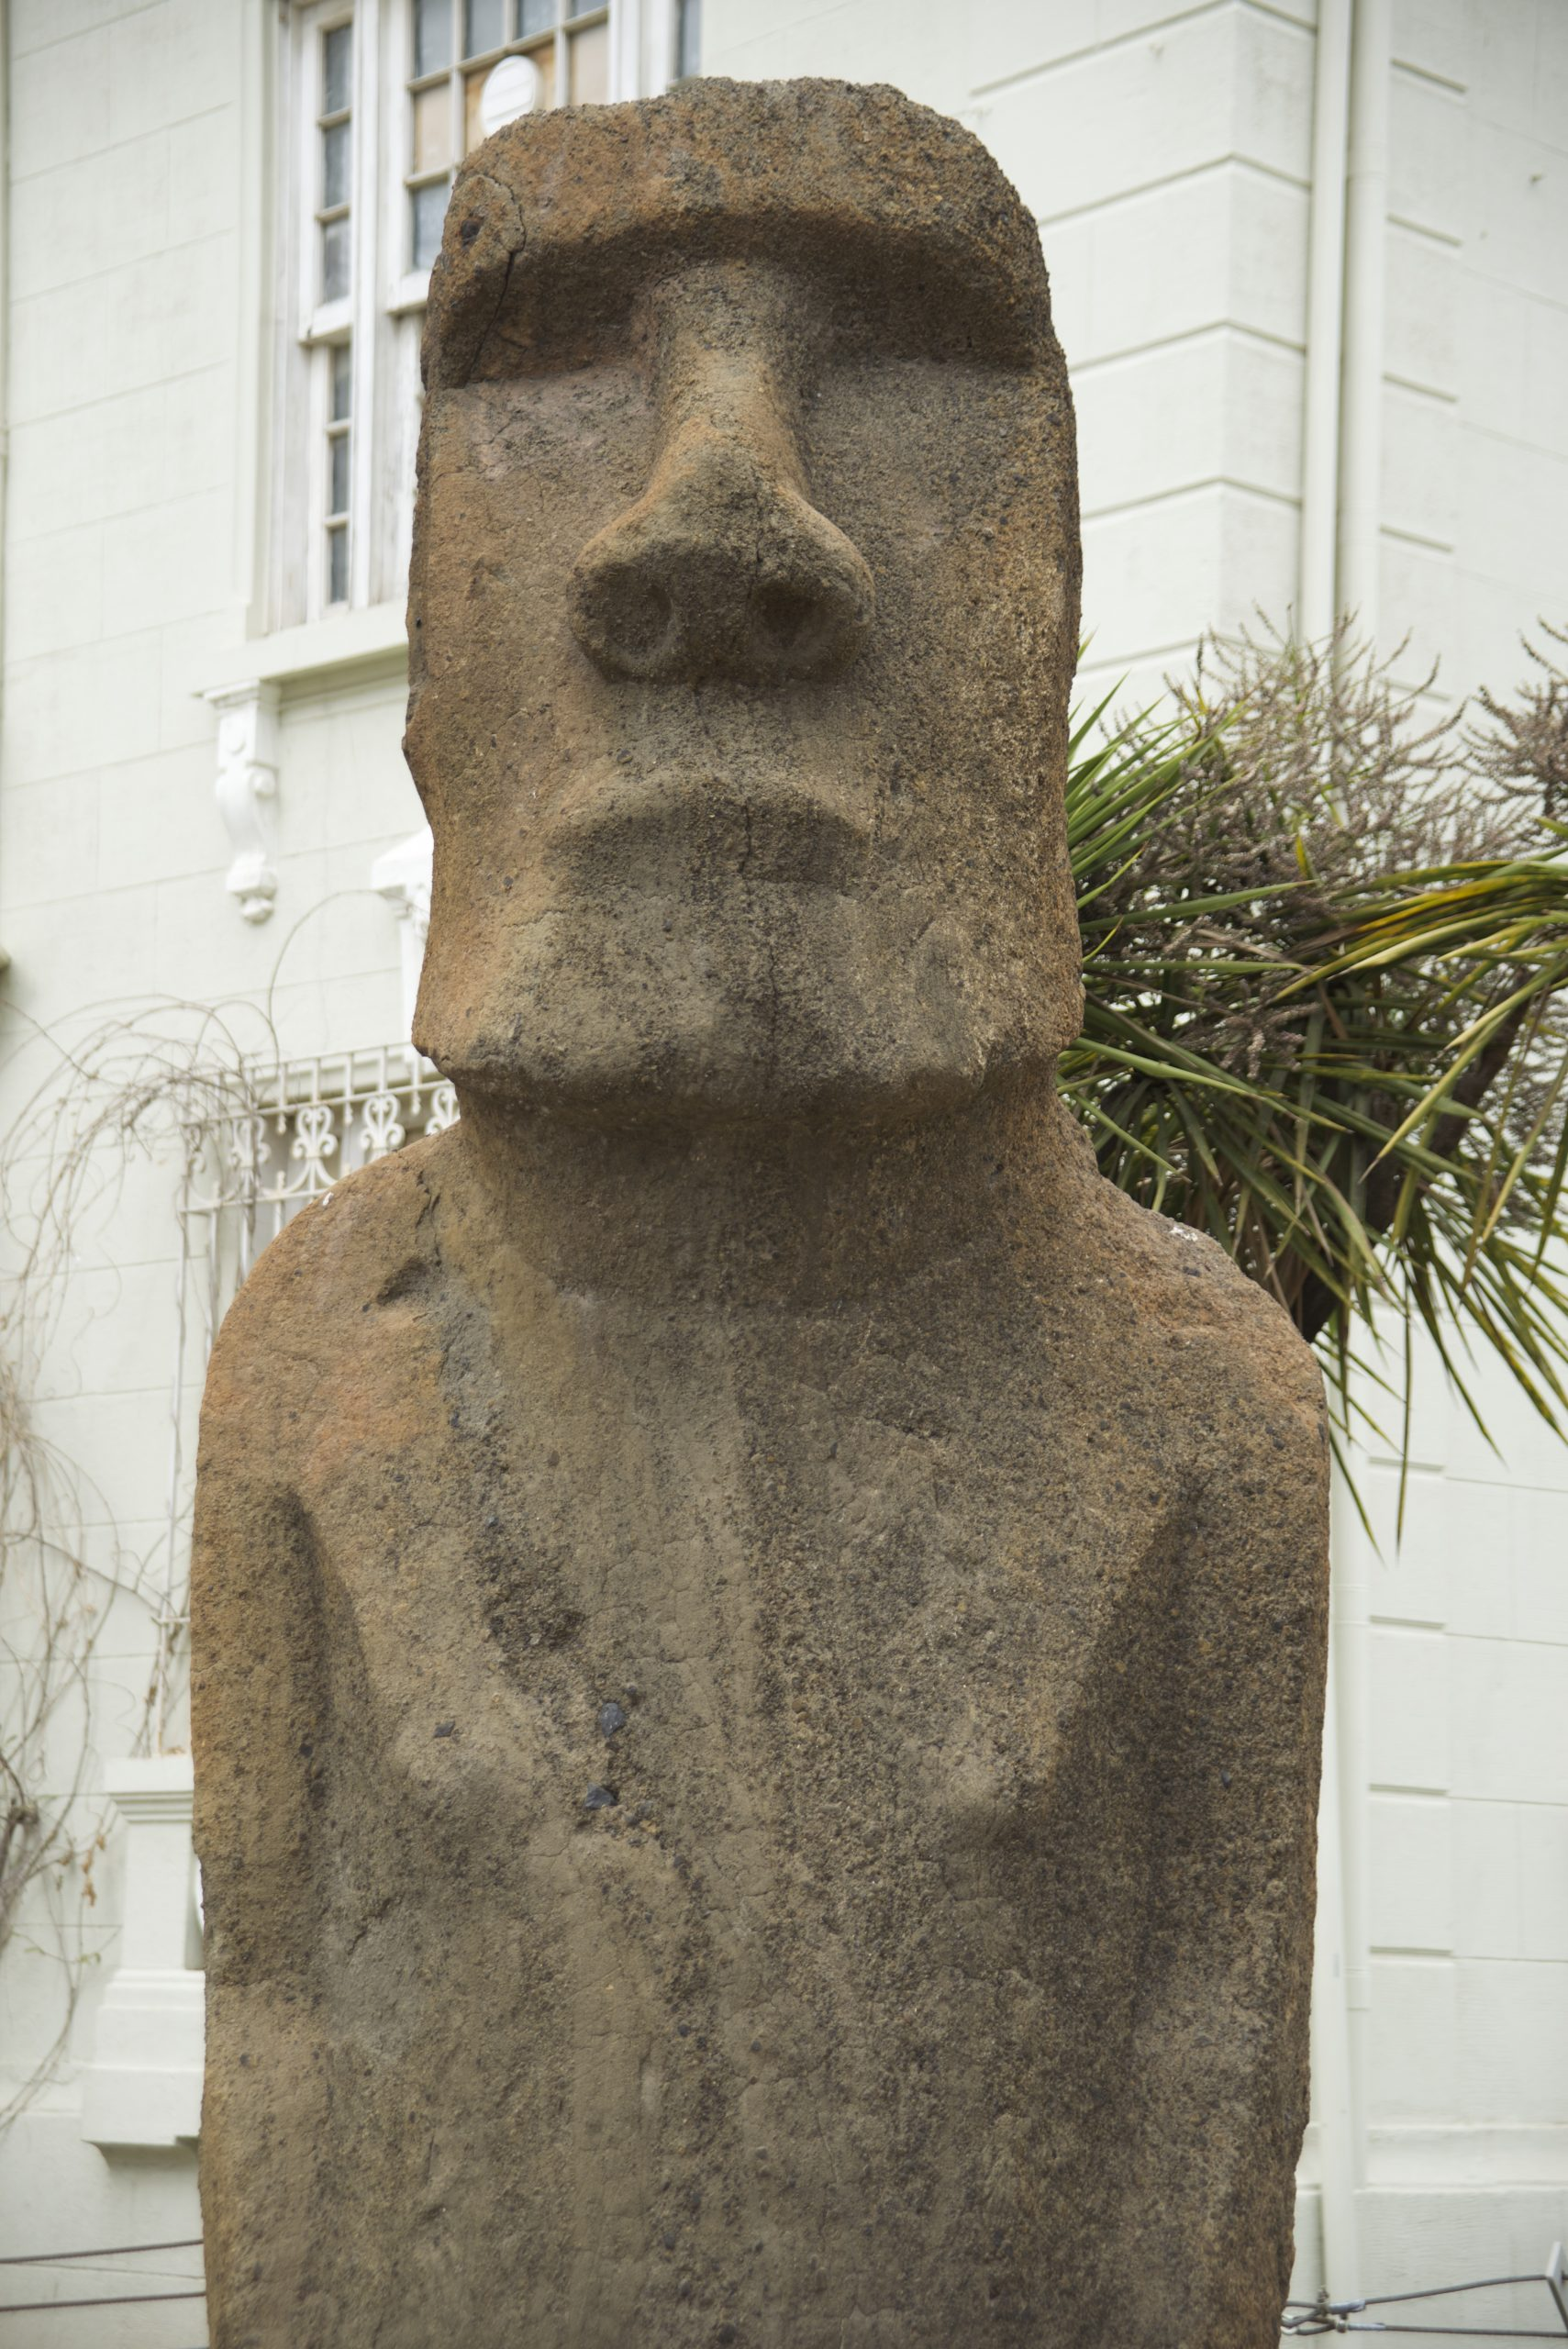 Relocation Of Moai Objects - Wikiwand tout Statue Moaï 1M